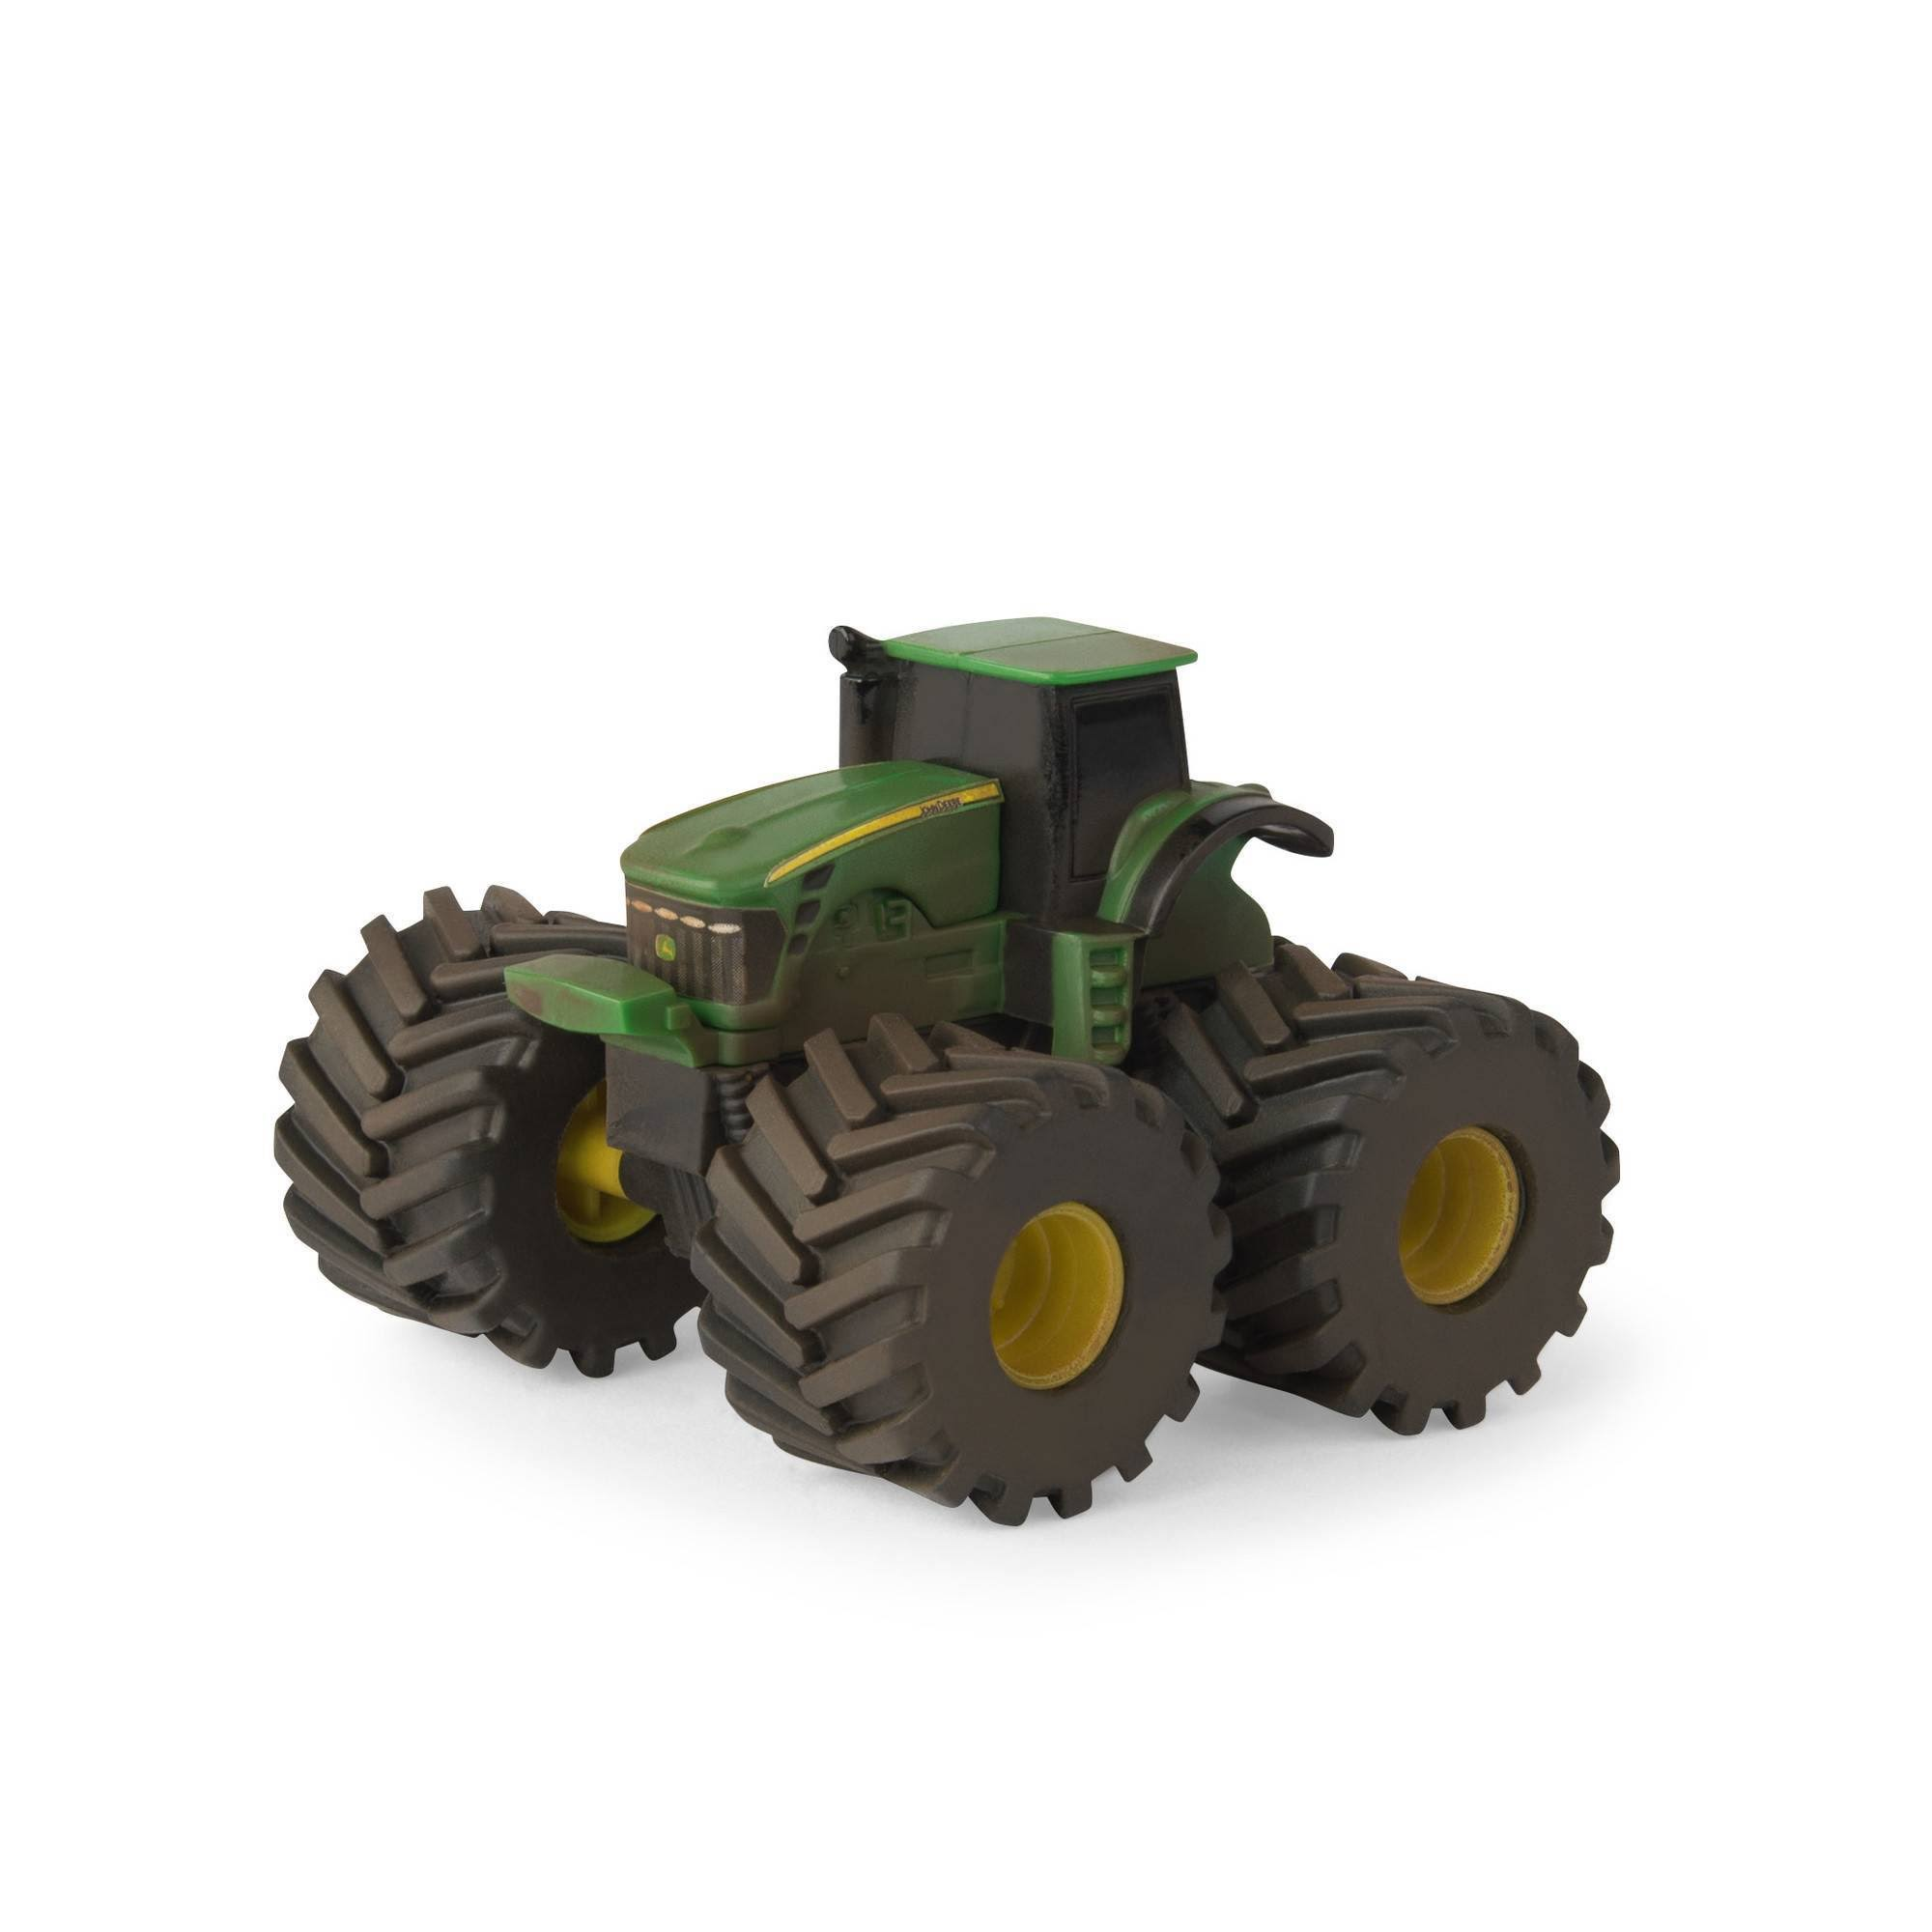 John Deere Impulse Muddy Tractor Monster Treads Toy